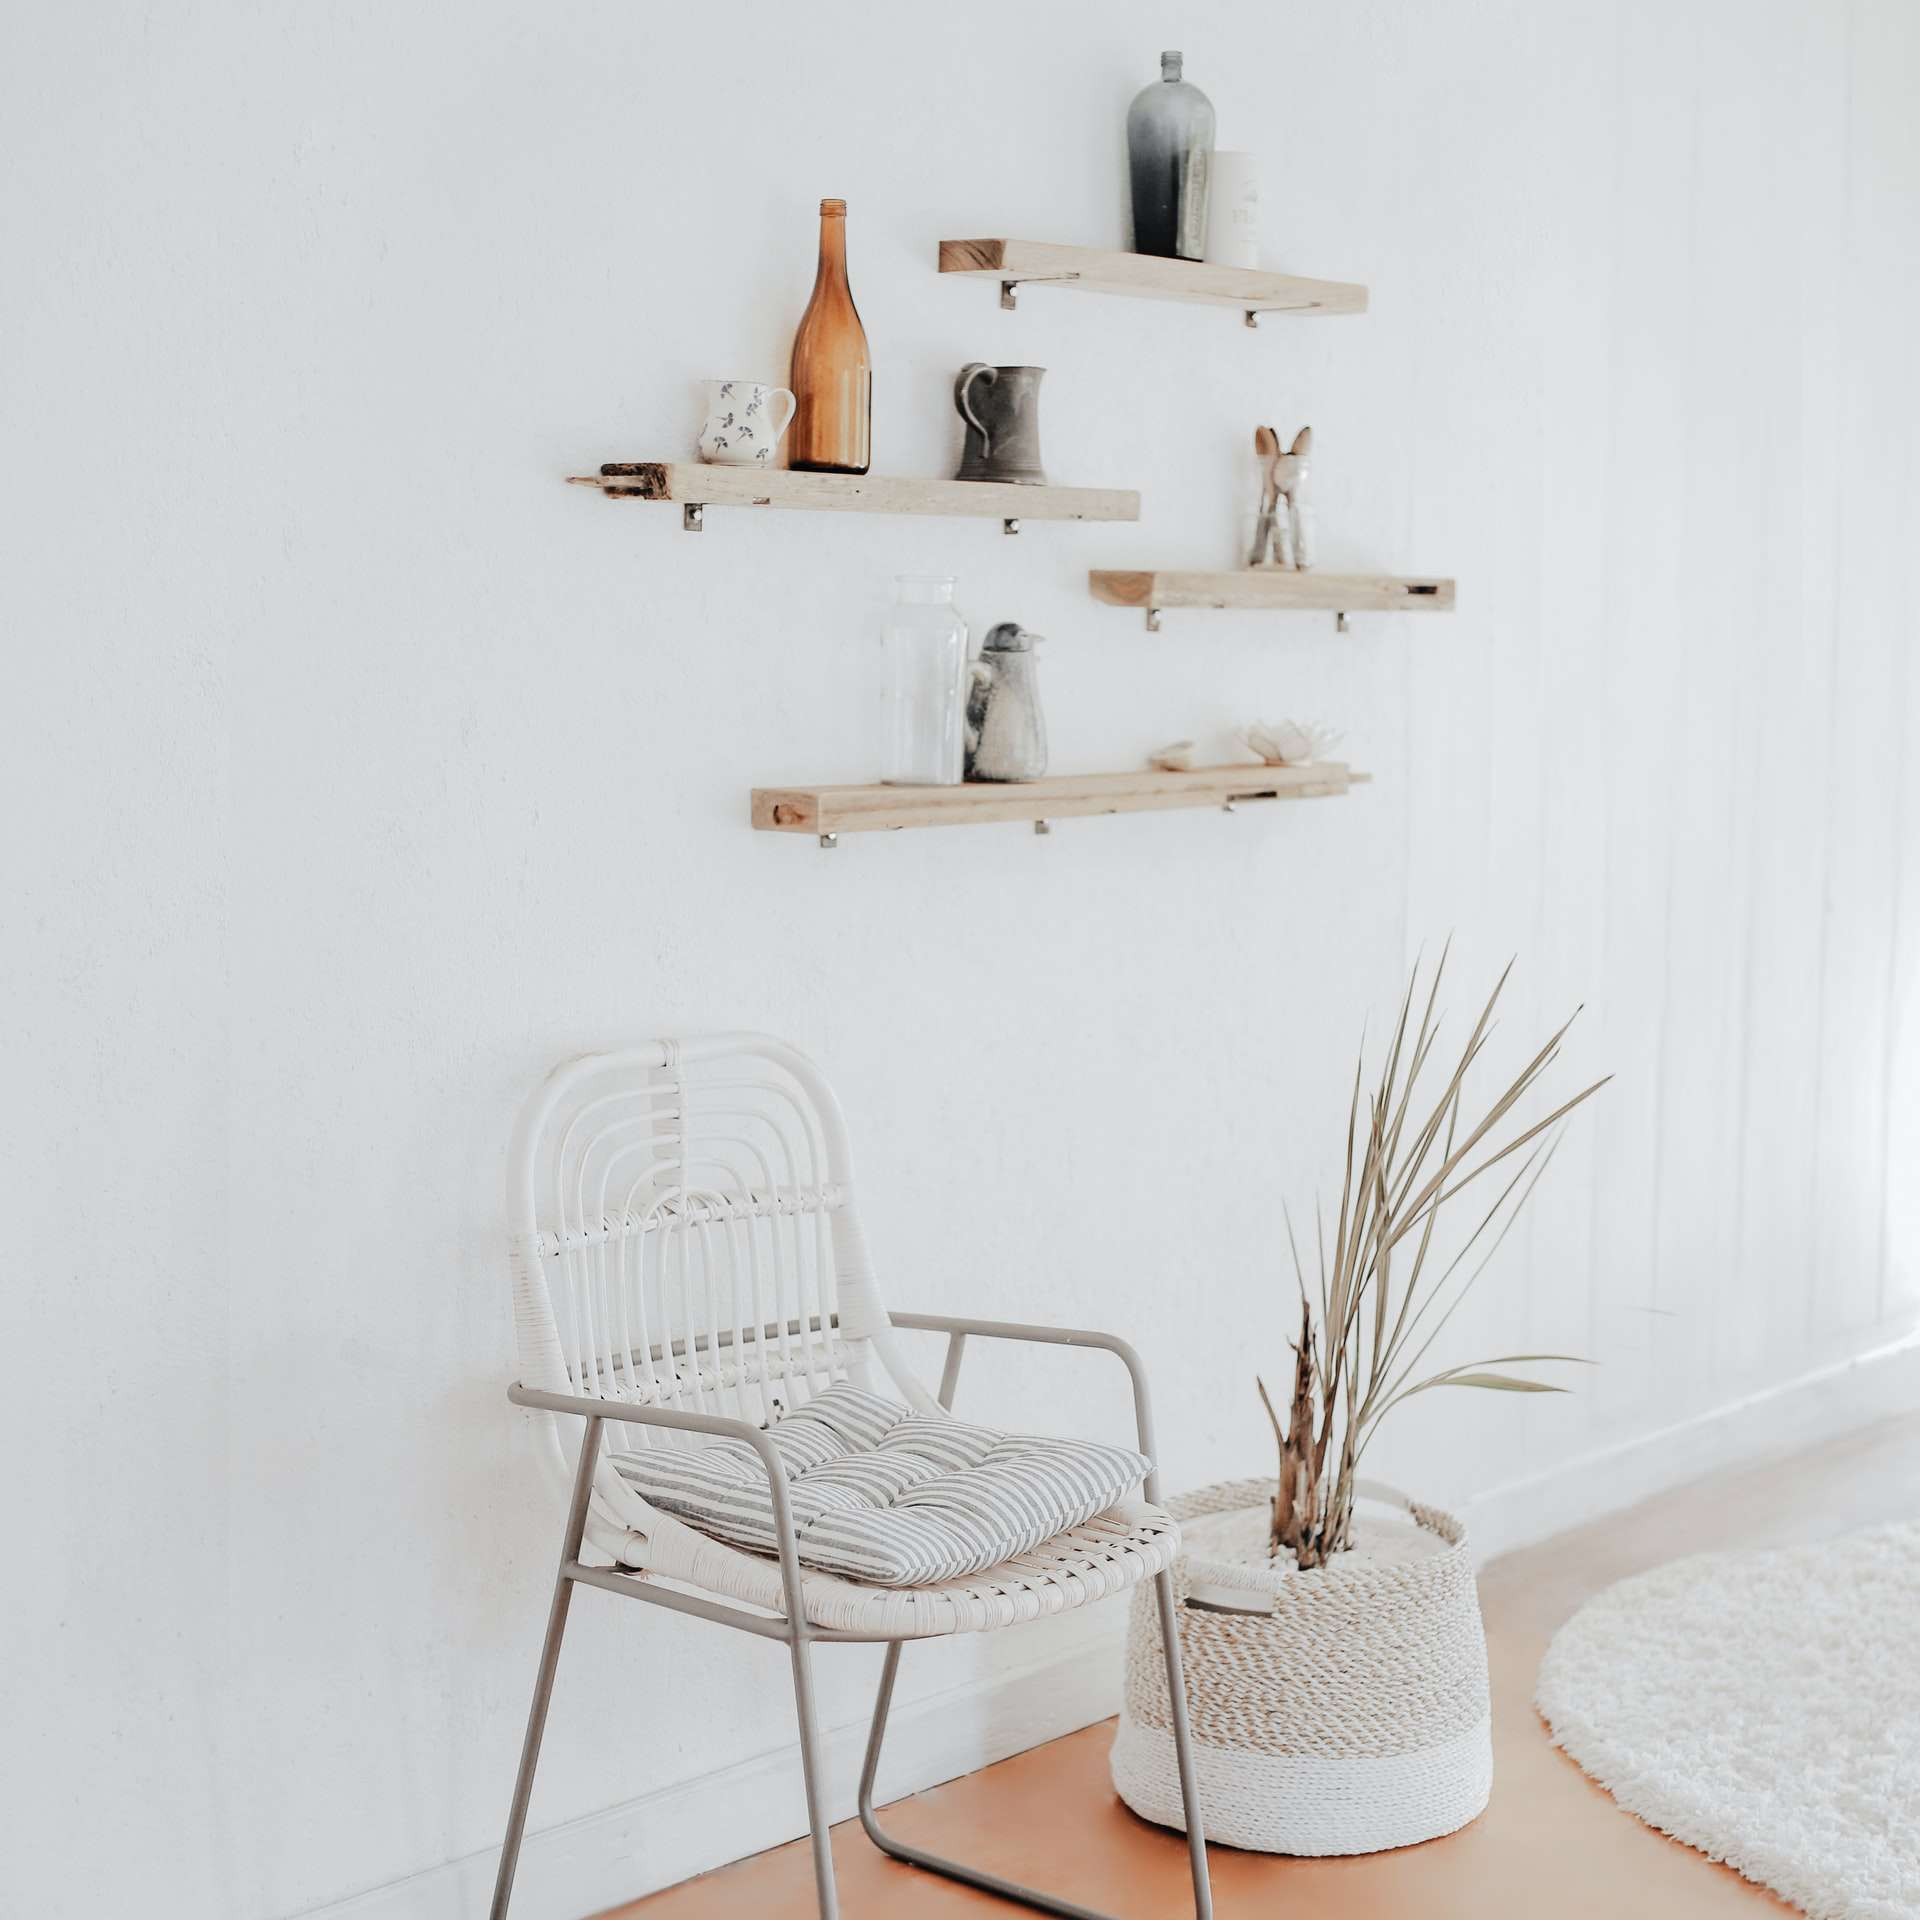 minimalist room with chair and shelving